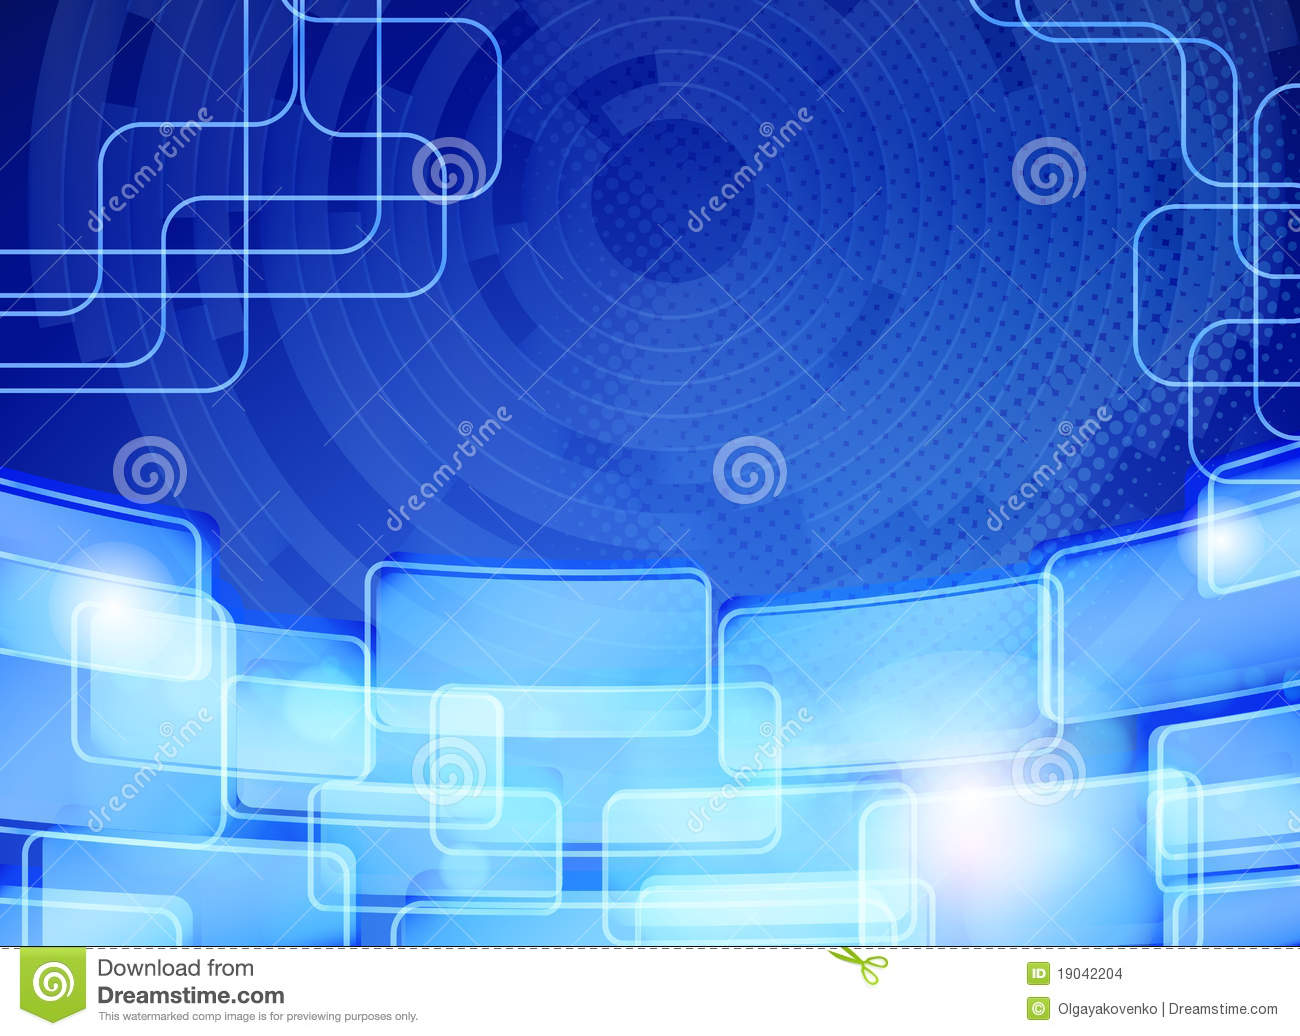 Wallpaper Teknologi 3d Abstract Blue Techno Background Card Design Stock Images